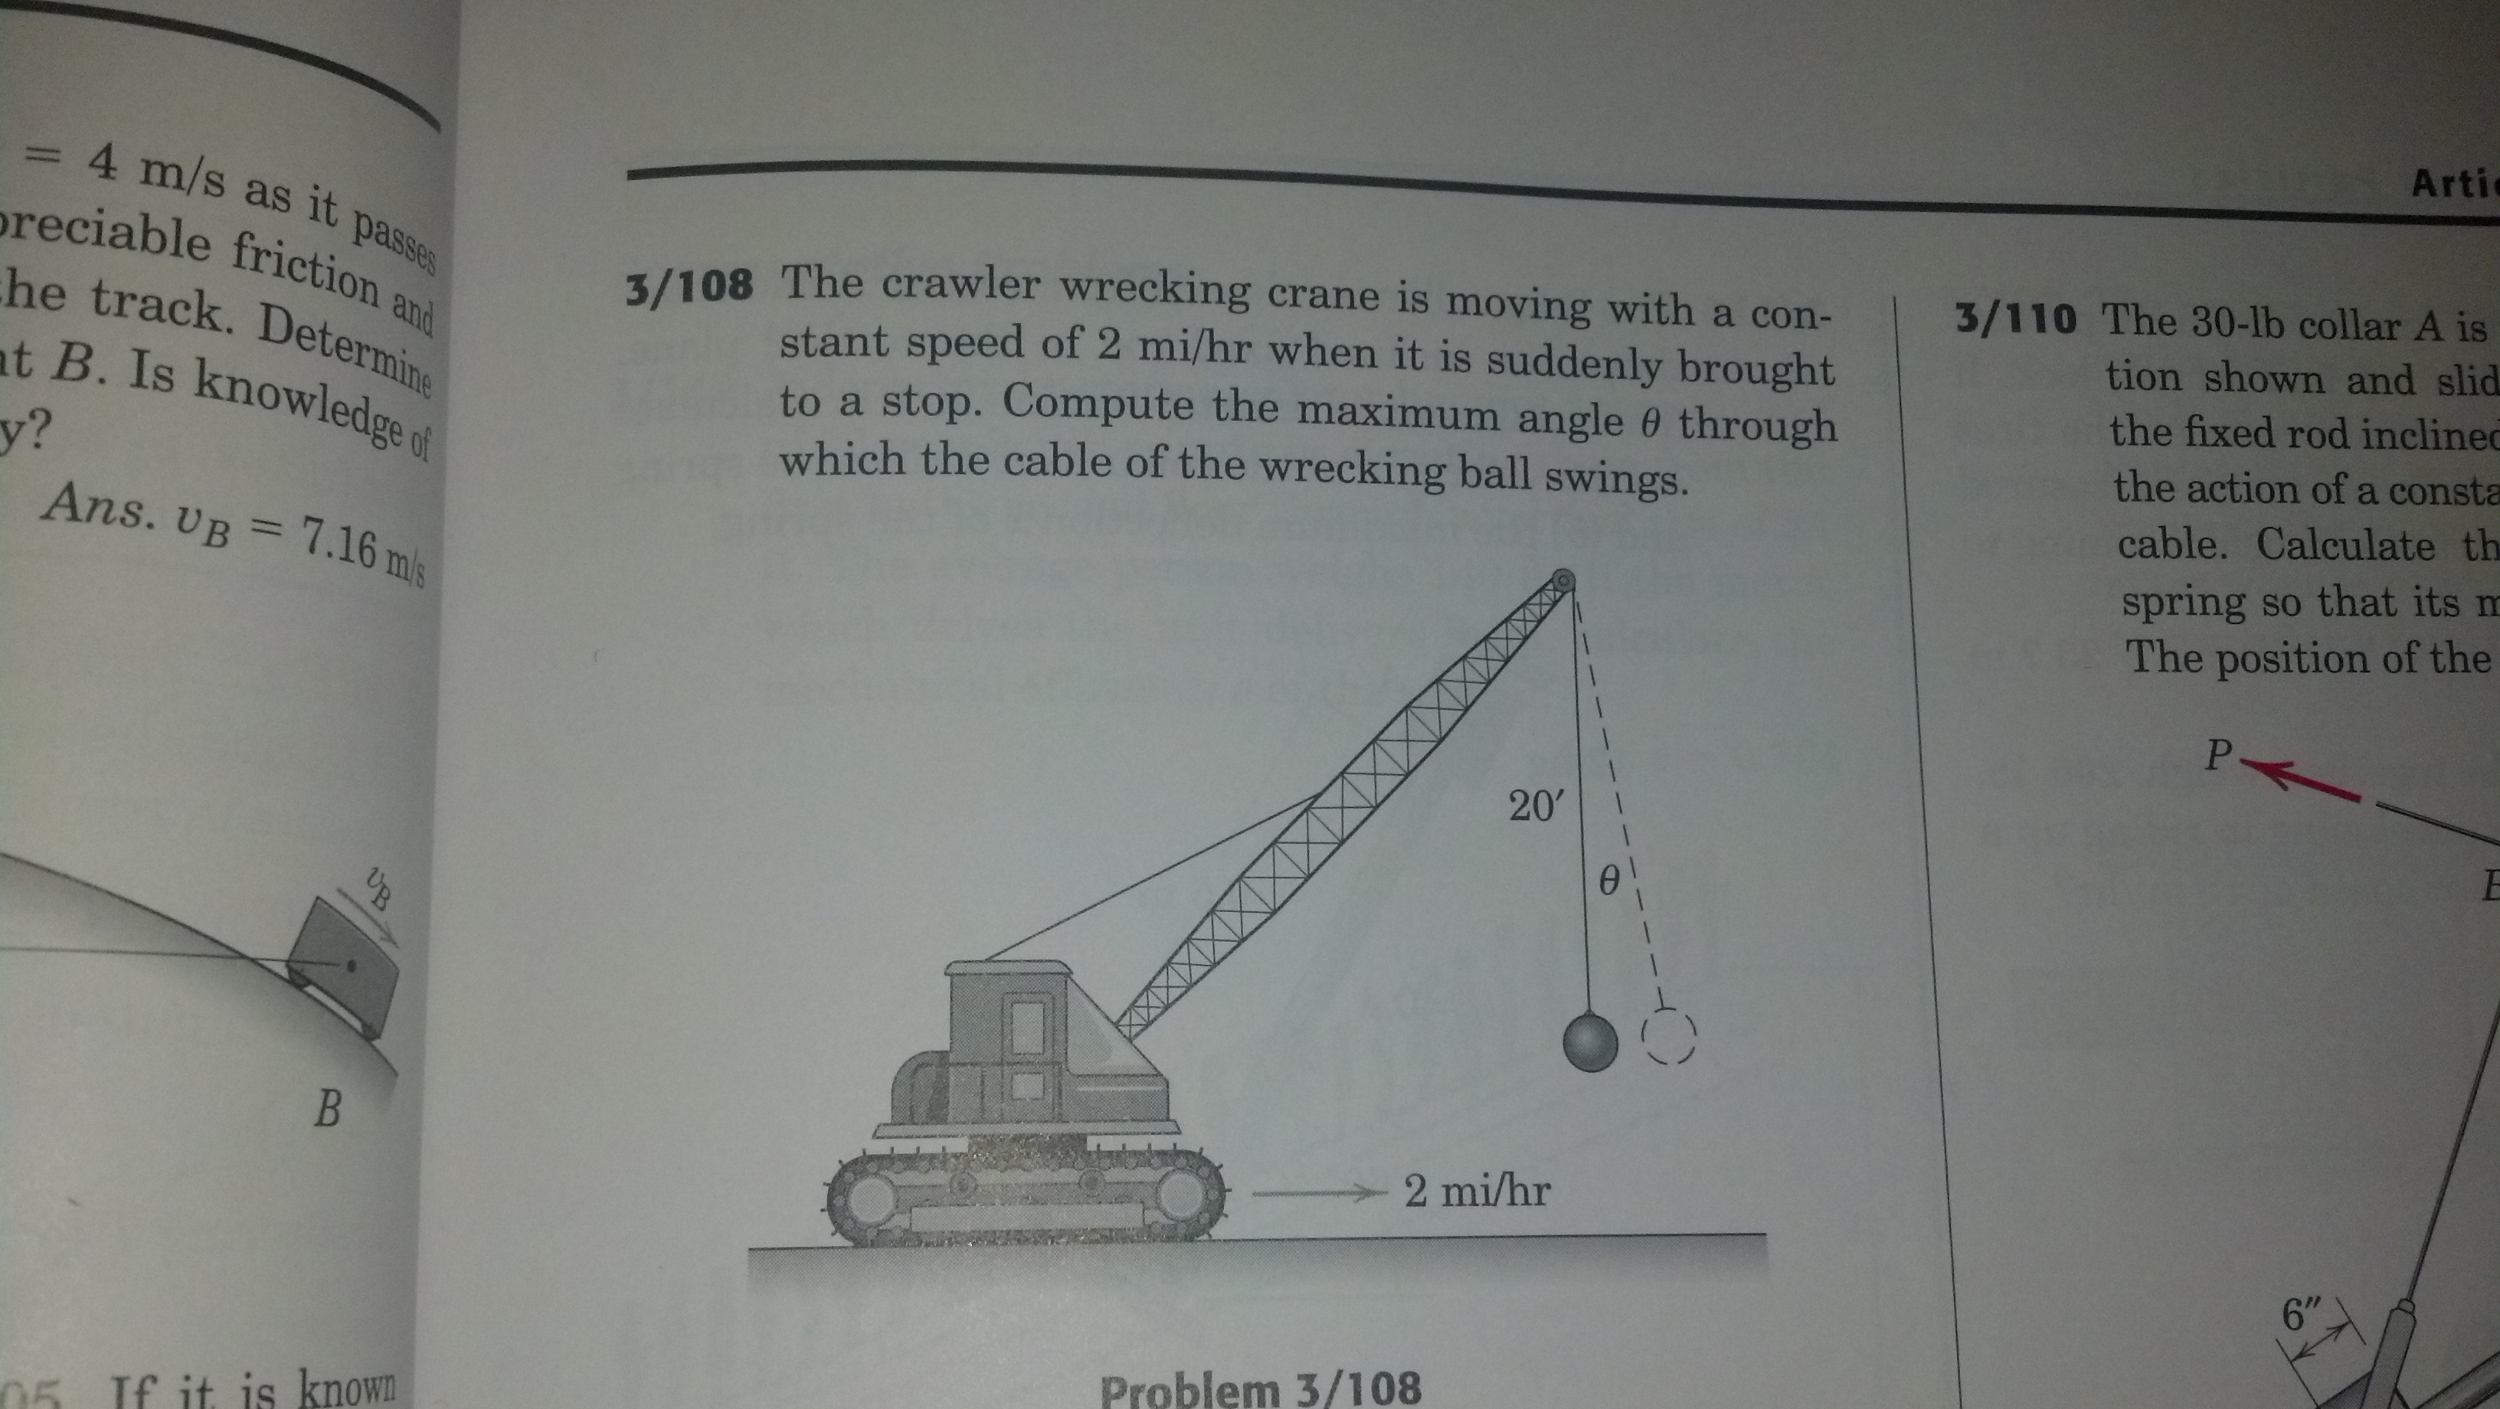 Mobile Crane Questions And Answers : The crawler wrecking crane is moving with a constant